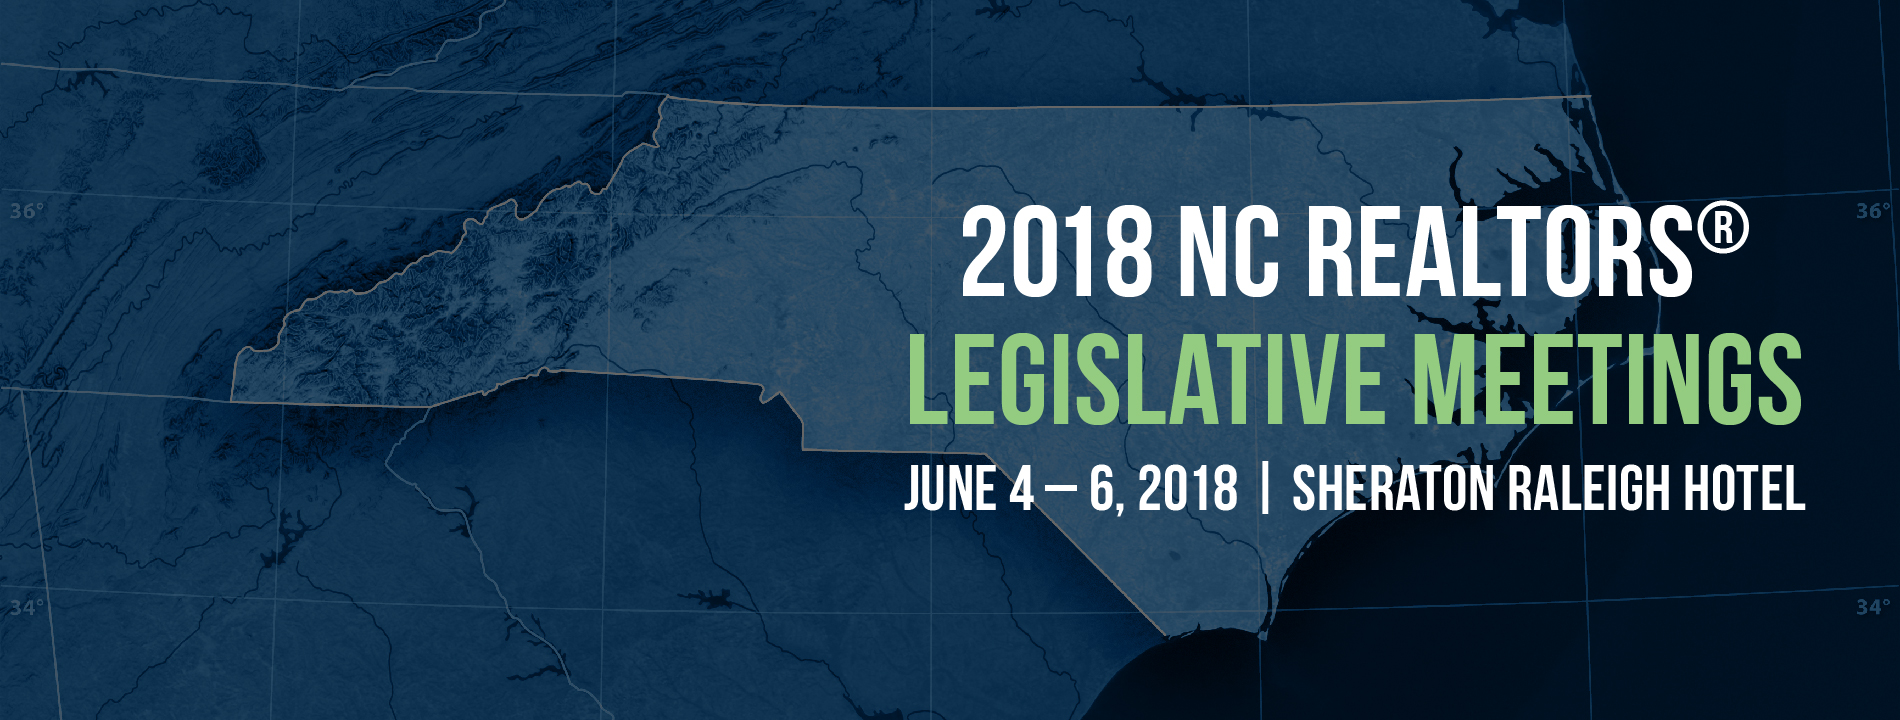 2018 Legislative Meetings. June 4 – 6, 2018. Sheraton Raleigh Hotel